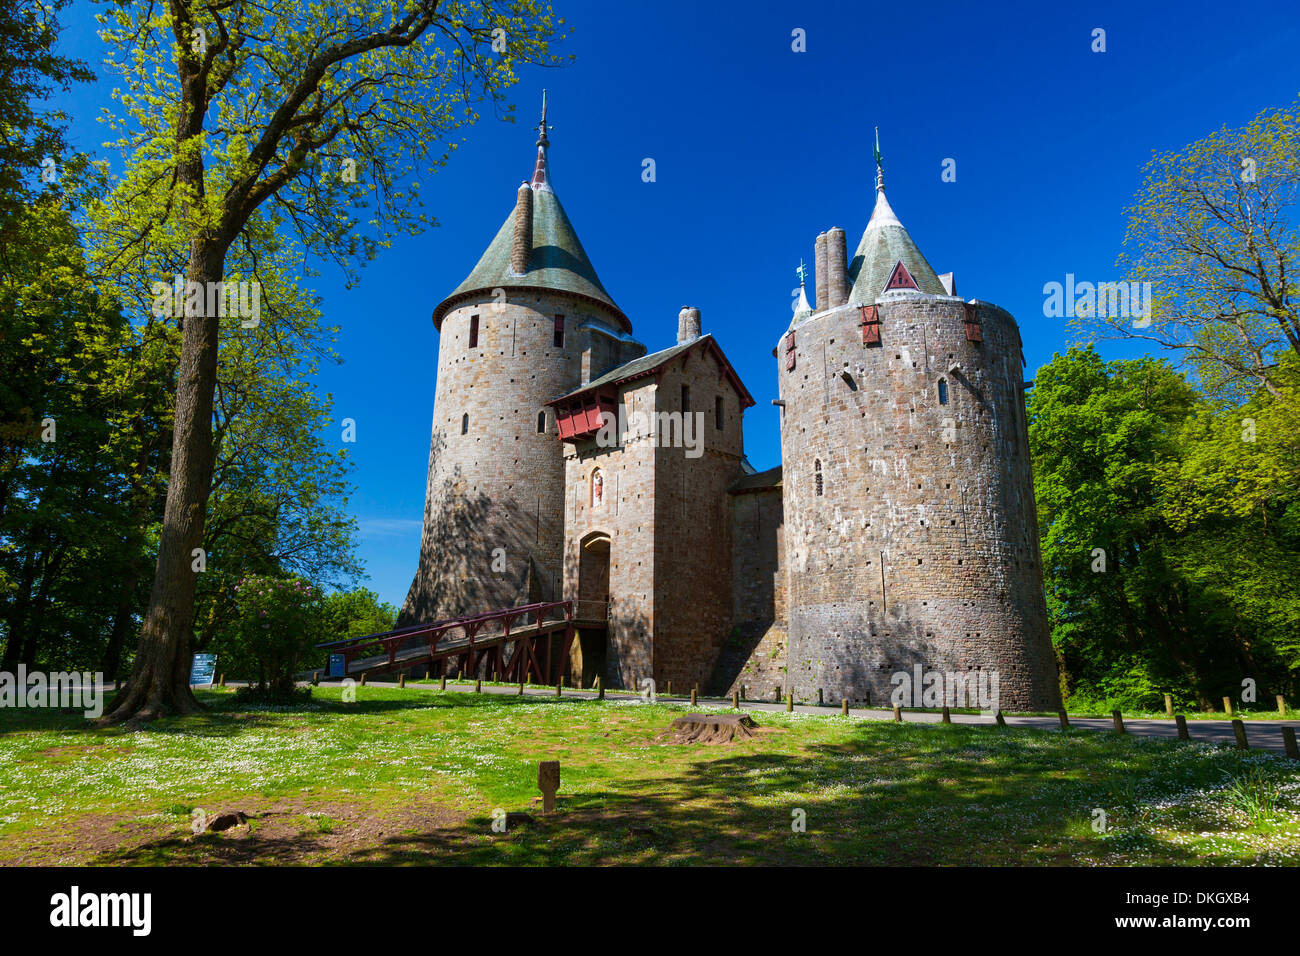 Castell Coch (Castle Coch) (The Red Castle), Tongwynlais, Cardiff, Wales, United Kingdom, Europe - Stock Image